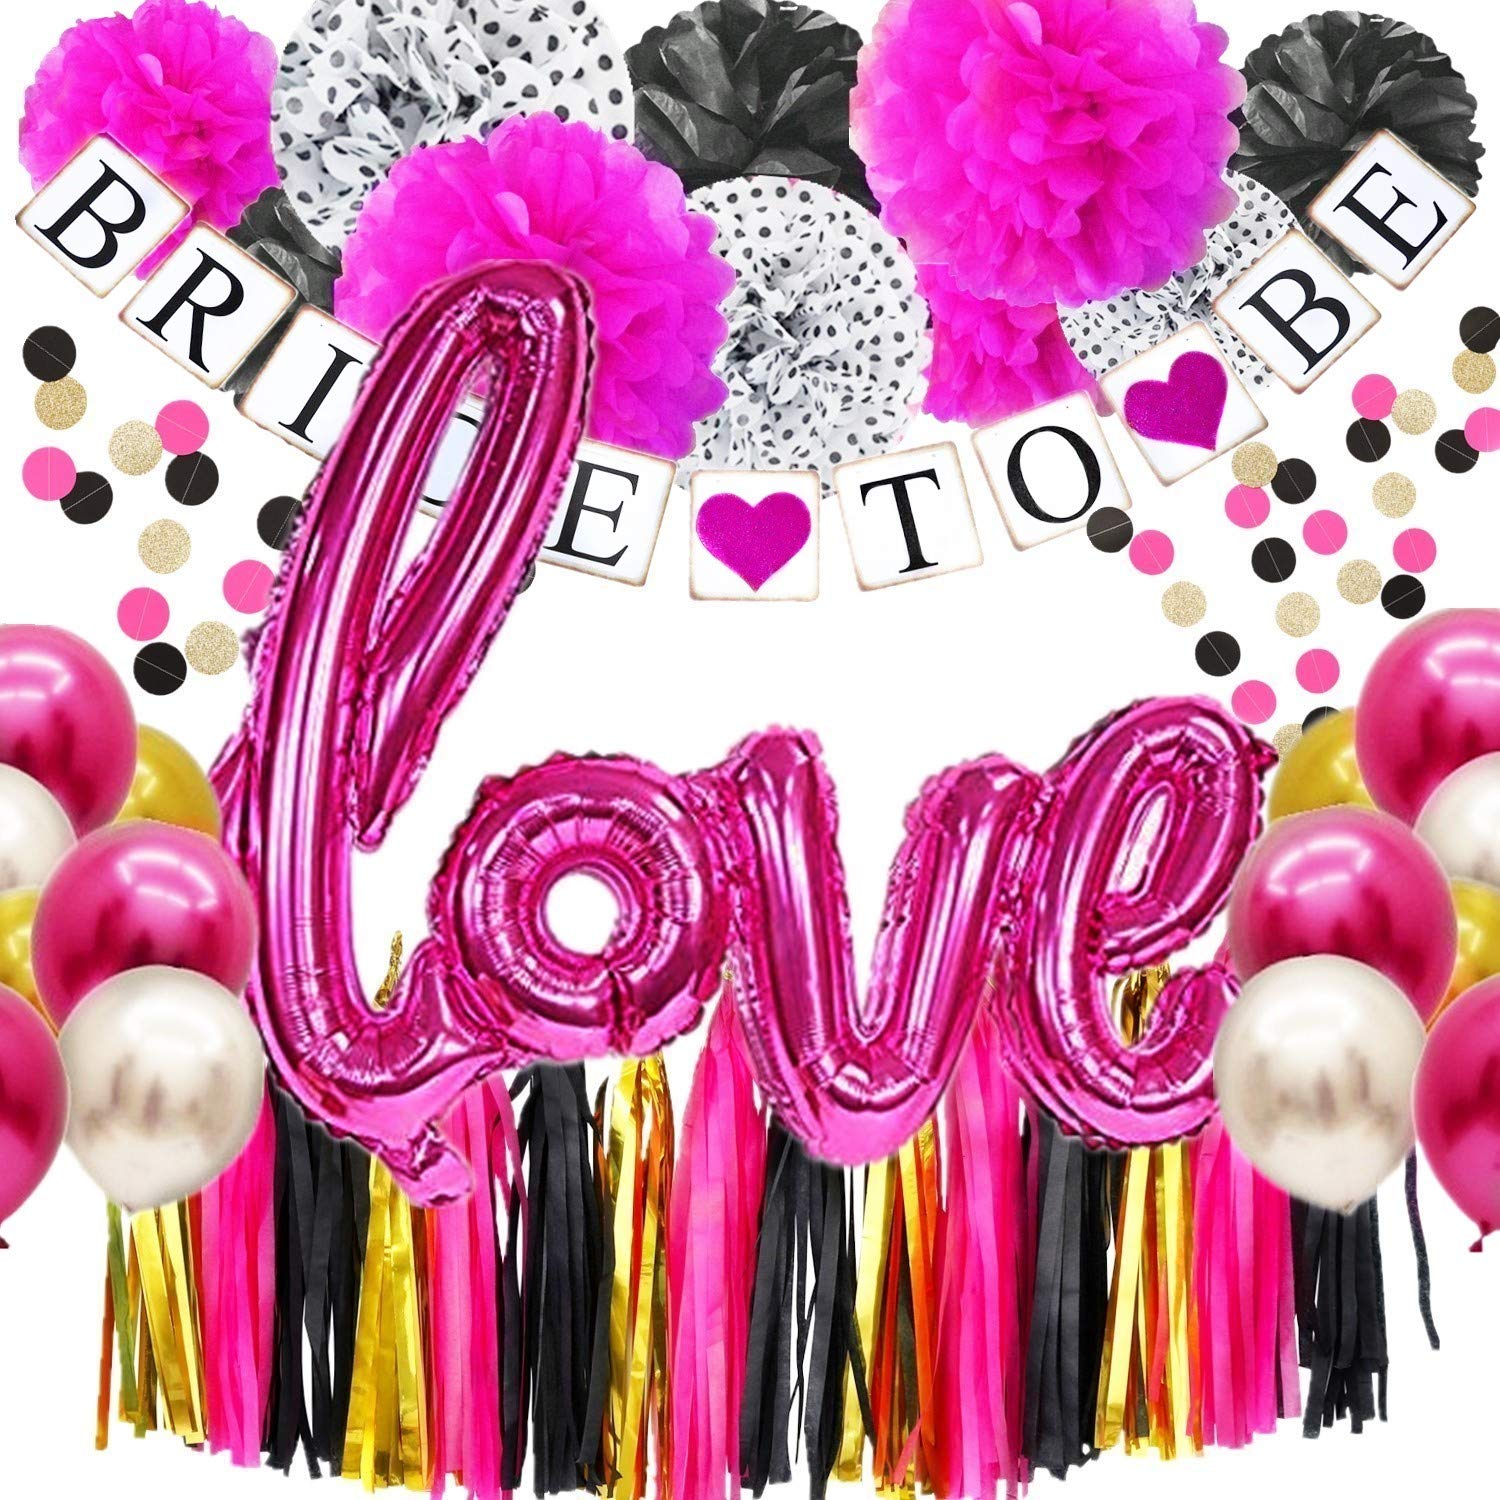 DOYOLLA Bachelorette Party Decorations Kit Back and Hot Pink, Tissue Poms, Bride to Be Banner, Tassels Garland, Love & 12inch Latex Balloons Set,Polka Dot Garlands for Wedding, Bridal Shower Decor